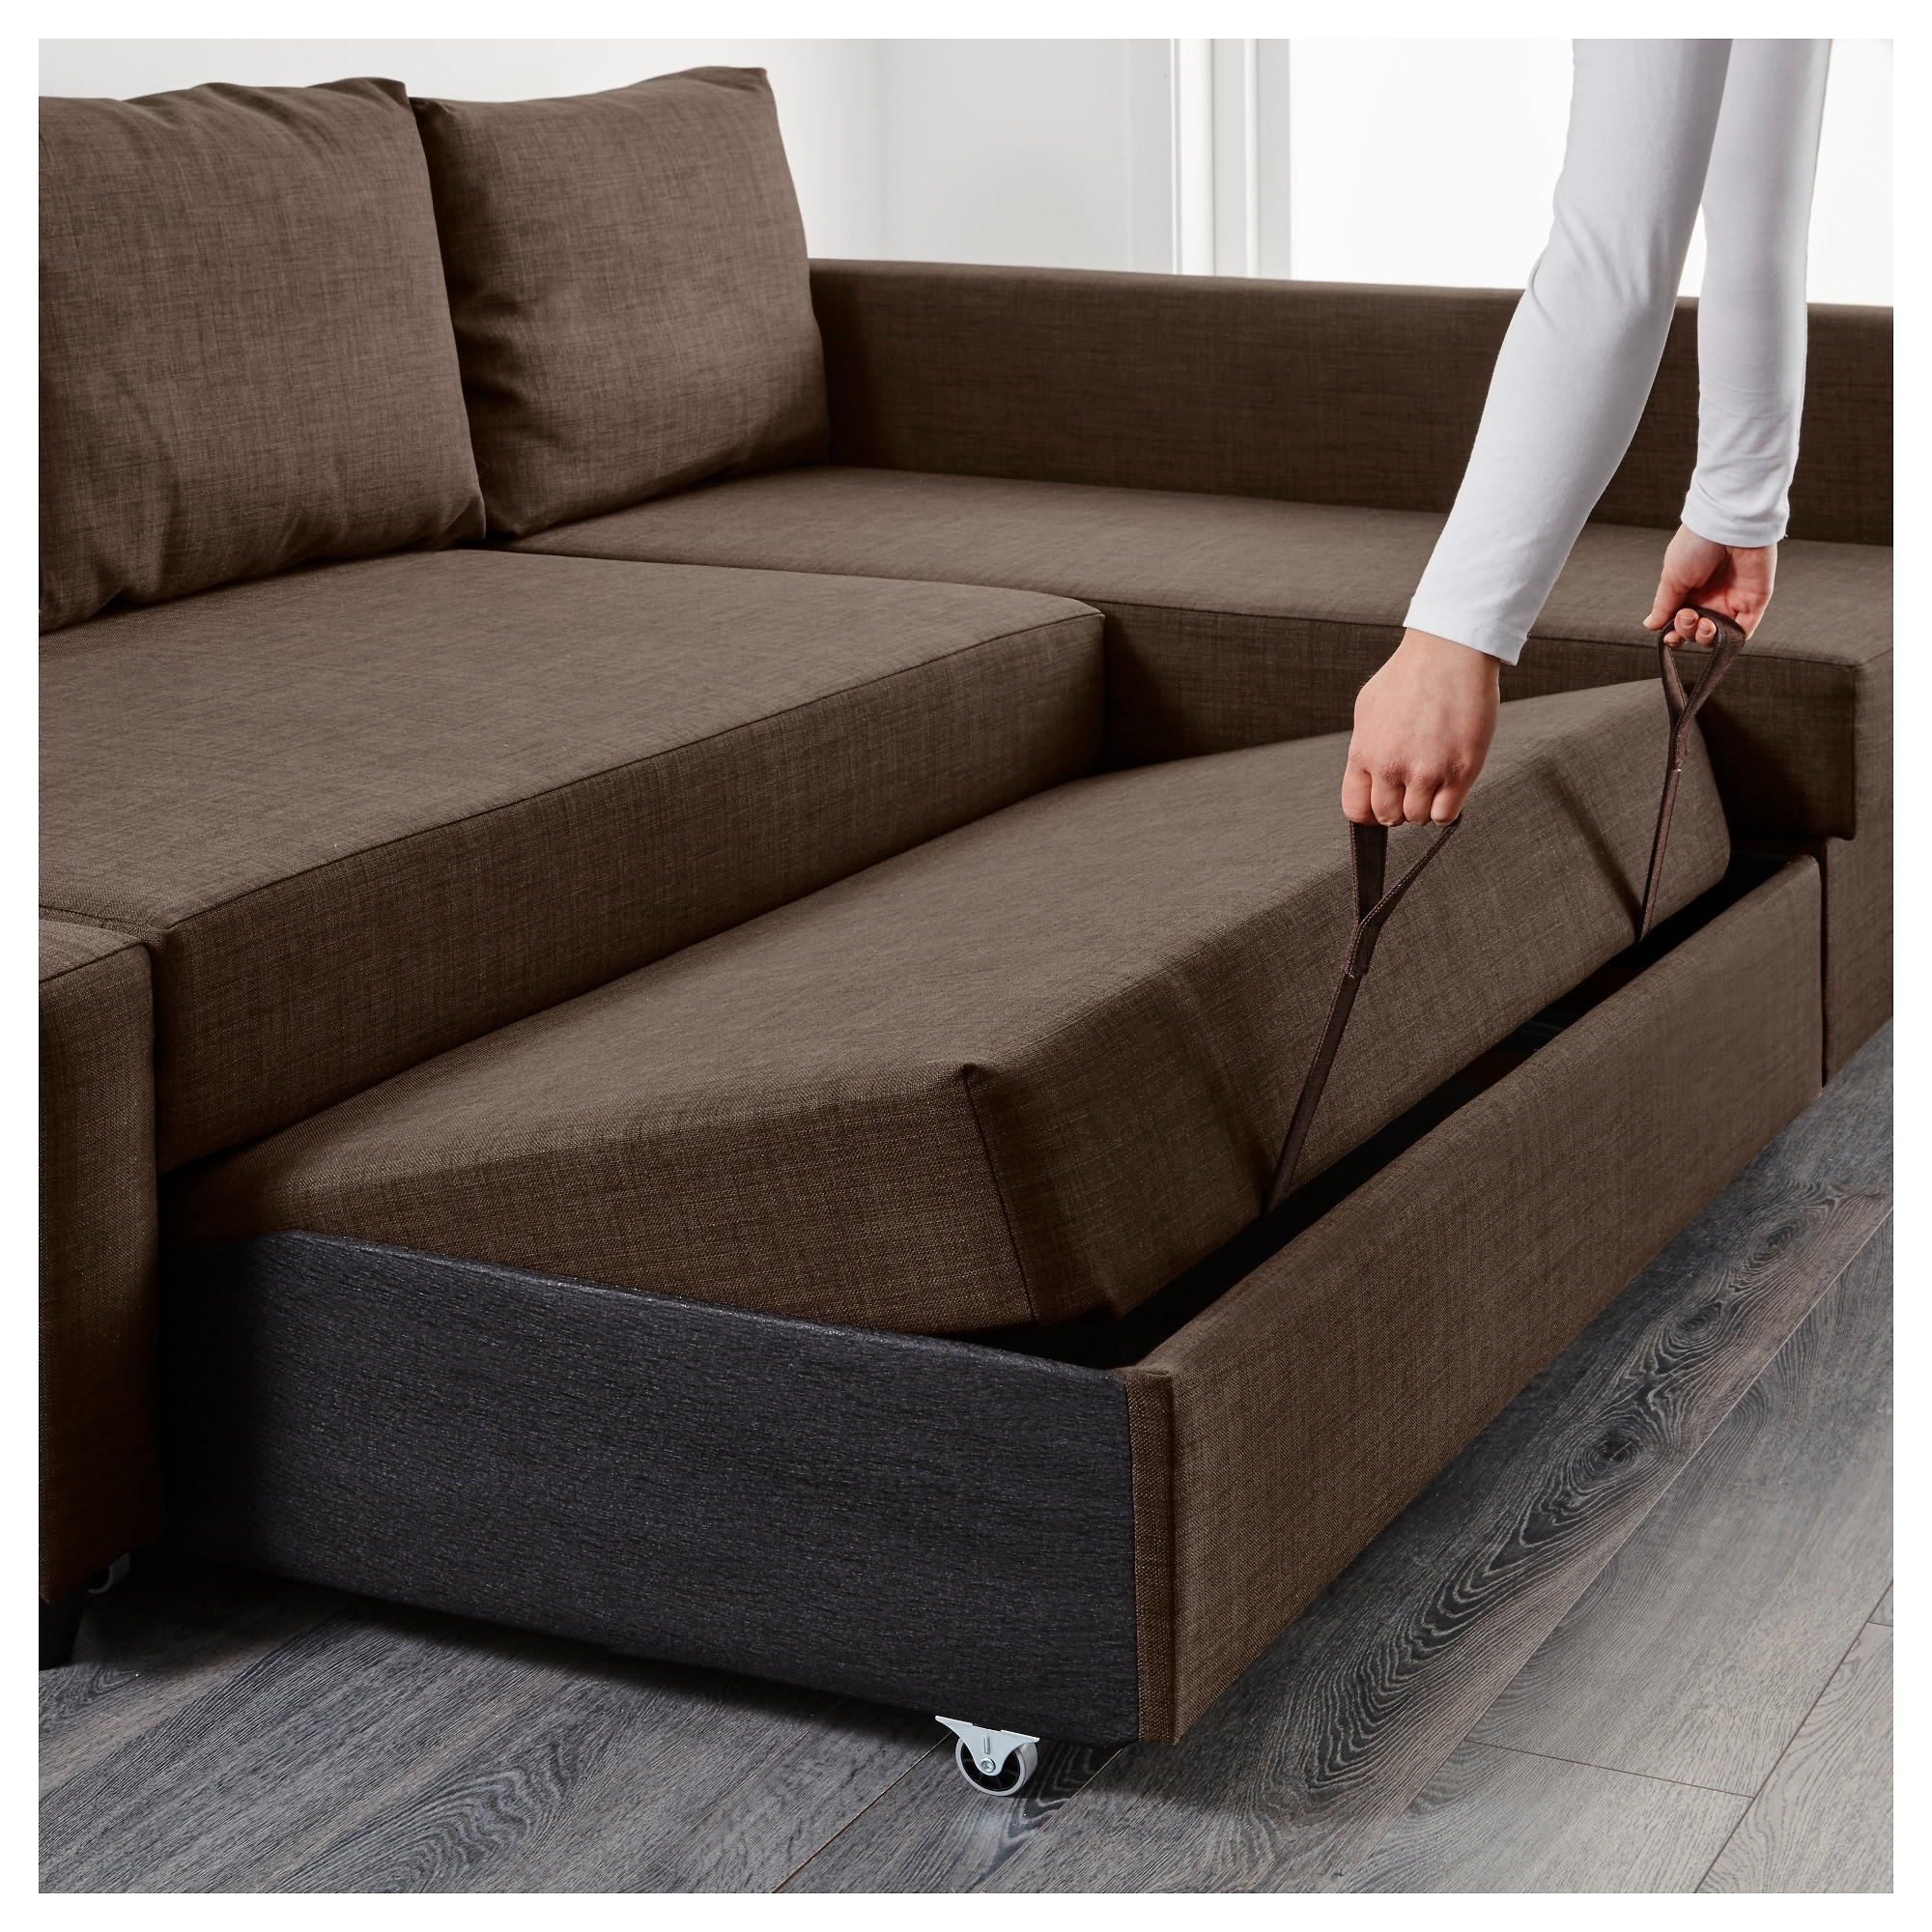 Sectional Sofas That Turn Into Beds For Preferred Friheten Sleeper Sectional,3 Seat W/storage – Skiftebo Dark Gray (View 13 of 20)